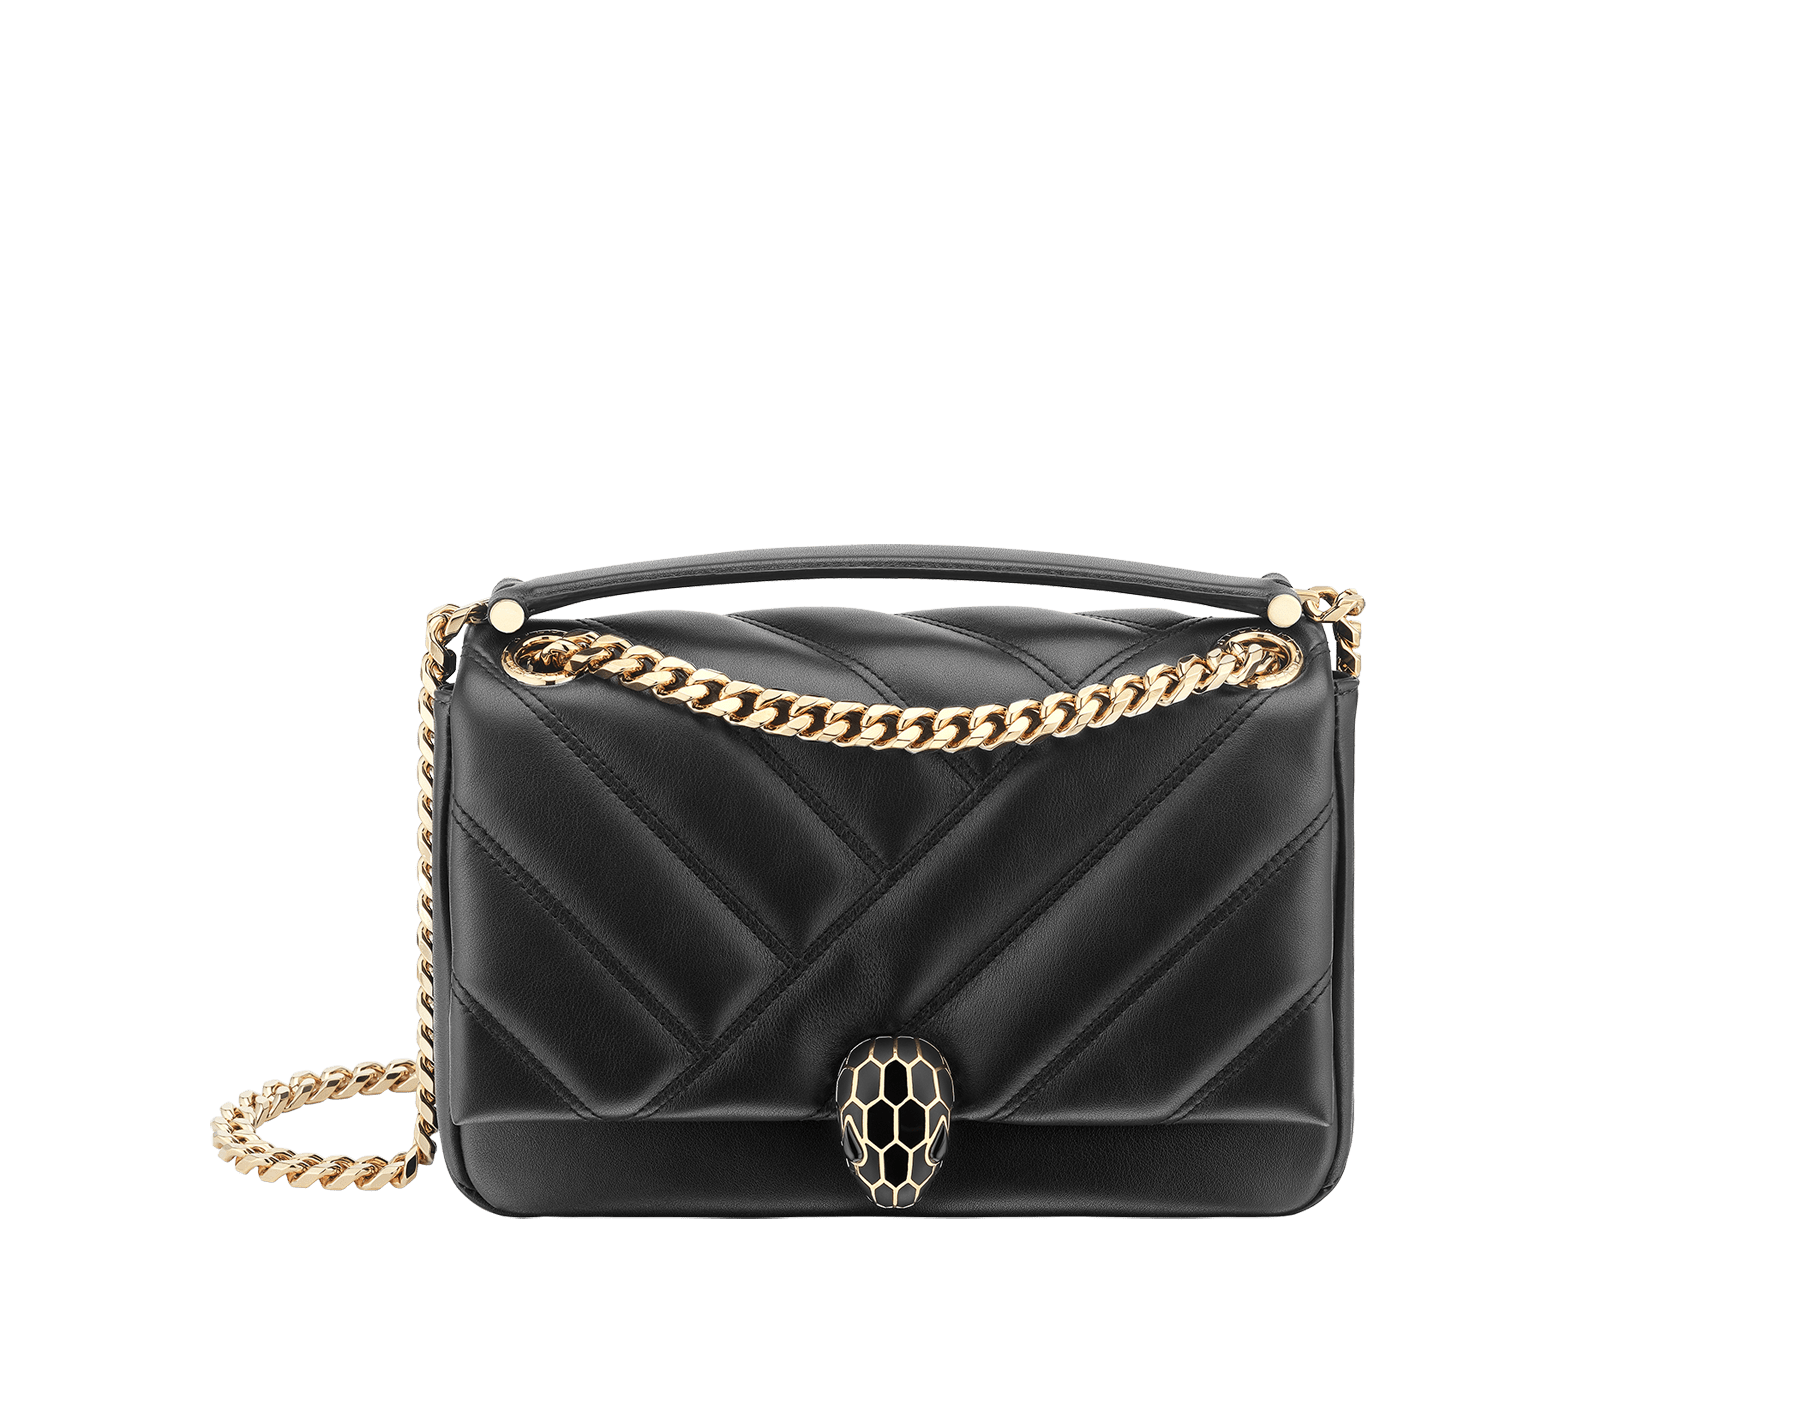 Serpenti Cabochon shoulder bag in soft matelassé black nappa leather with graphic motif and black calf leather. Snakehead closure in rose gold plated brass decorated with matte black and shiny black enamel, and black onyx eyes. 287987 image 1